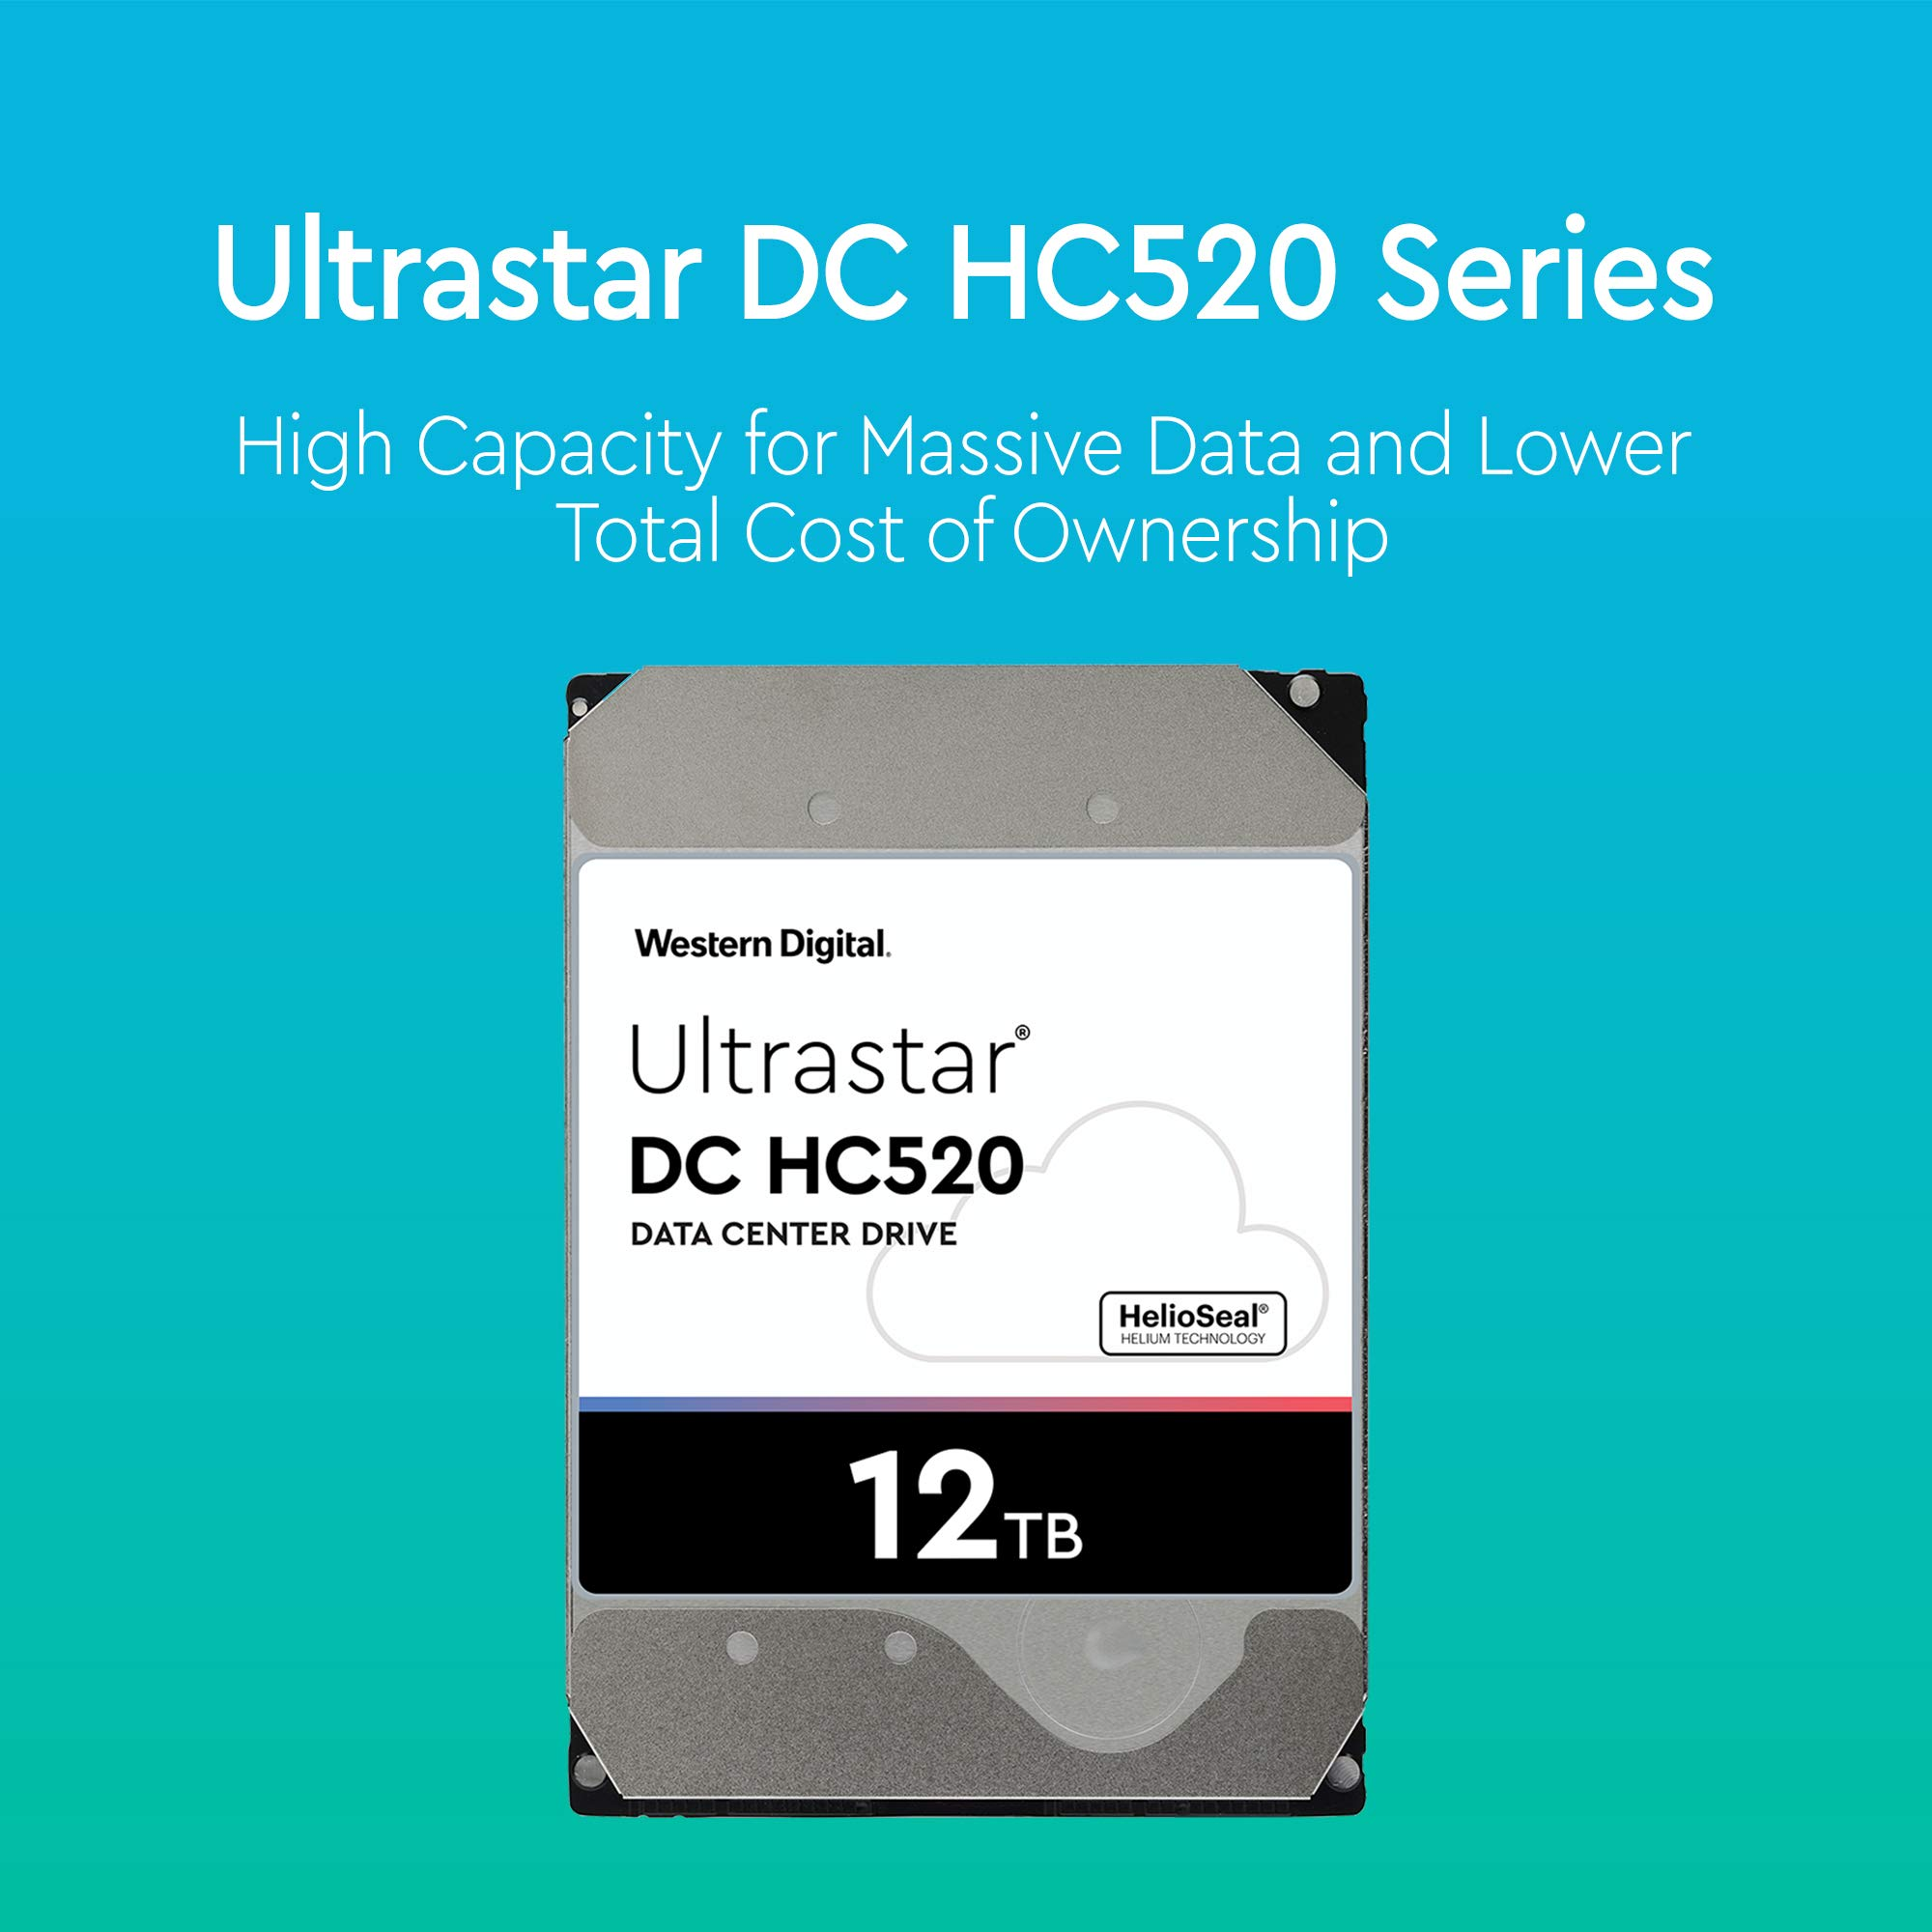 HGST - WD Ultrastar DC HC520 HDD | HUH721212ALE600 | 12TB 7.2K SATA 6Gb/s 256MB Cache 3.5-Inch | ISE 512e | 0F30144 | Helium Data Center Internal Hard Disk Drive by HGST (Image #2)